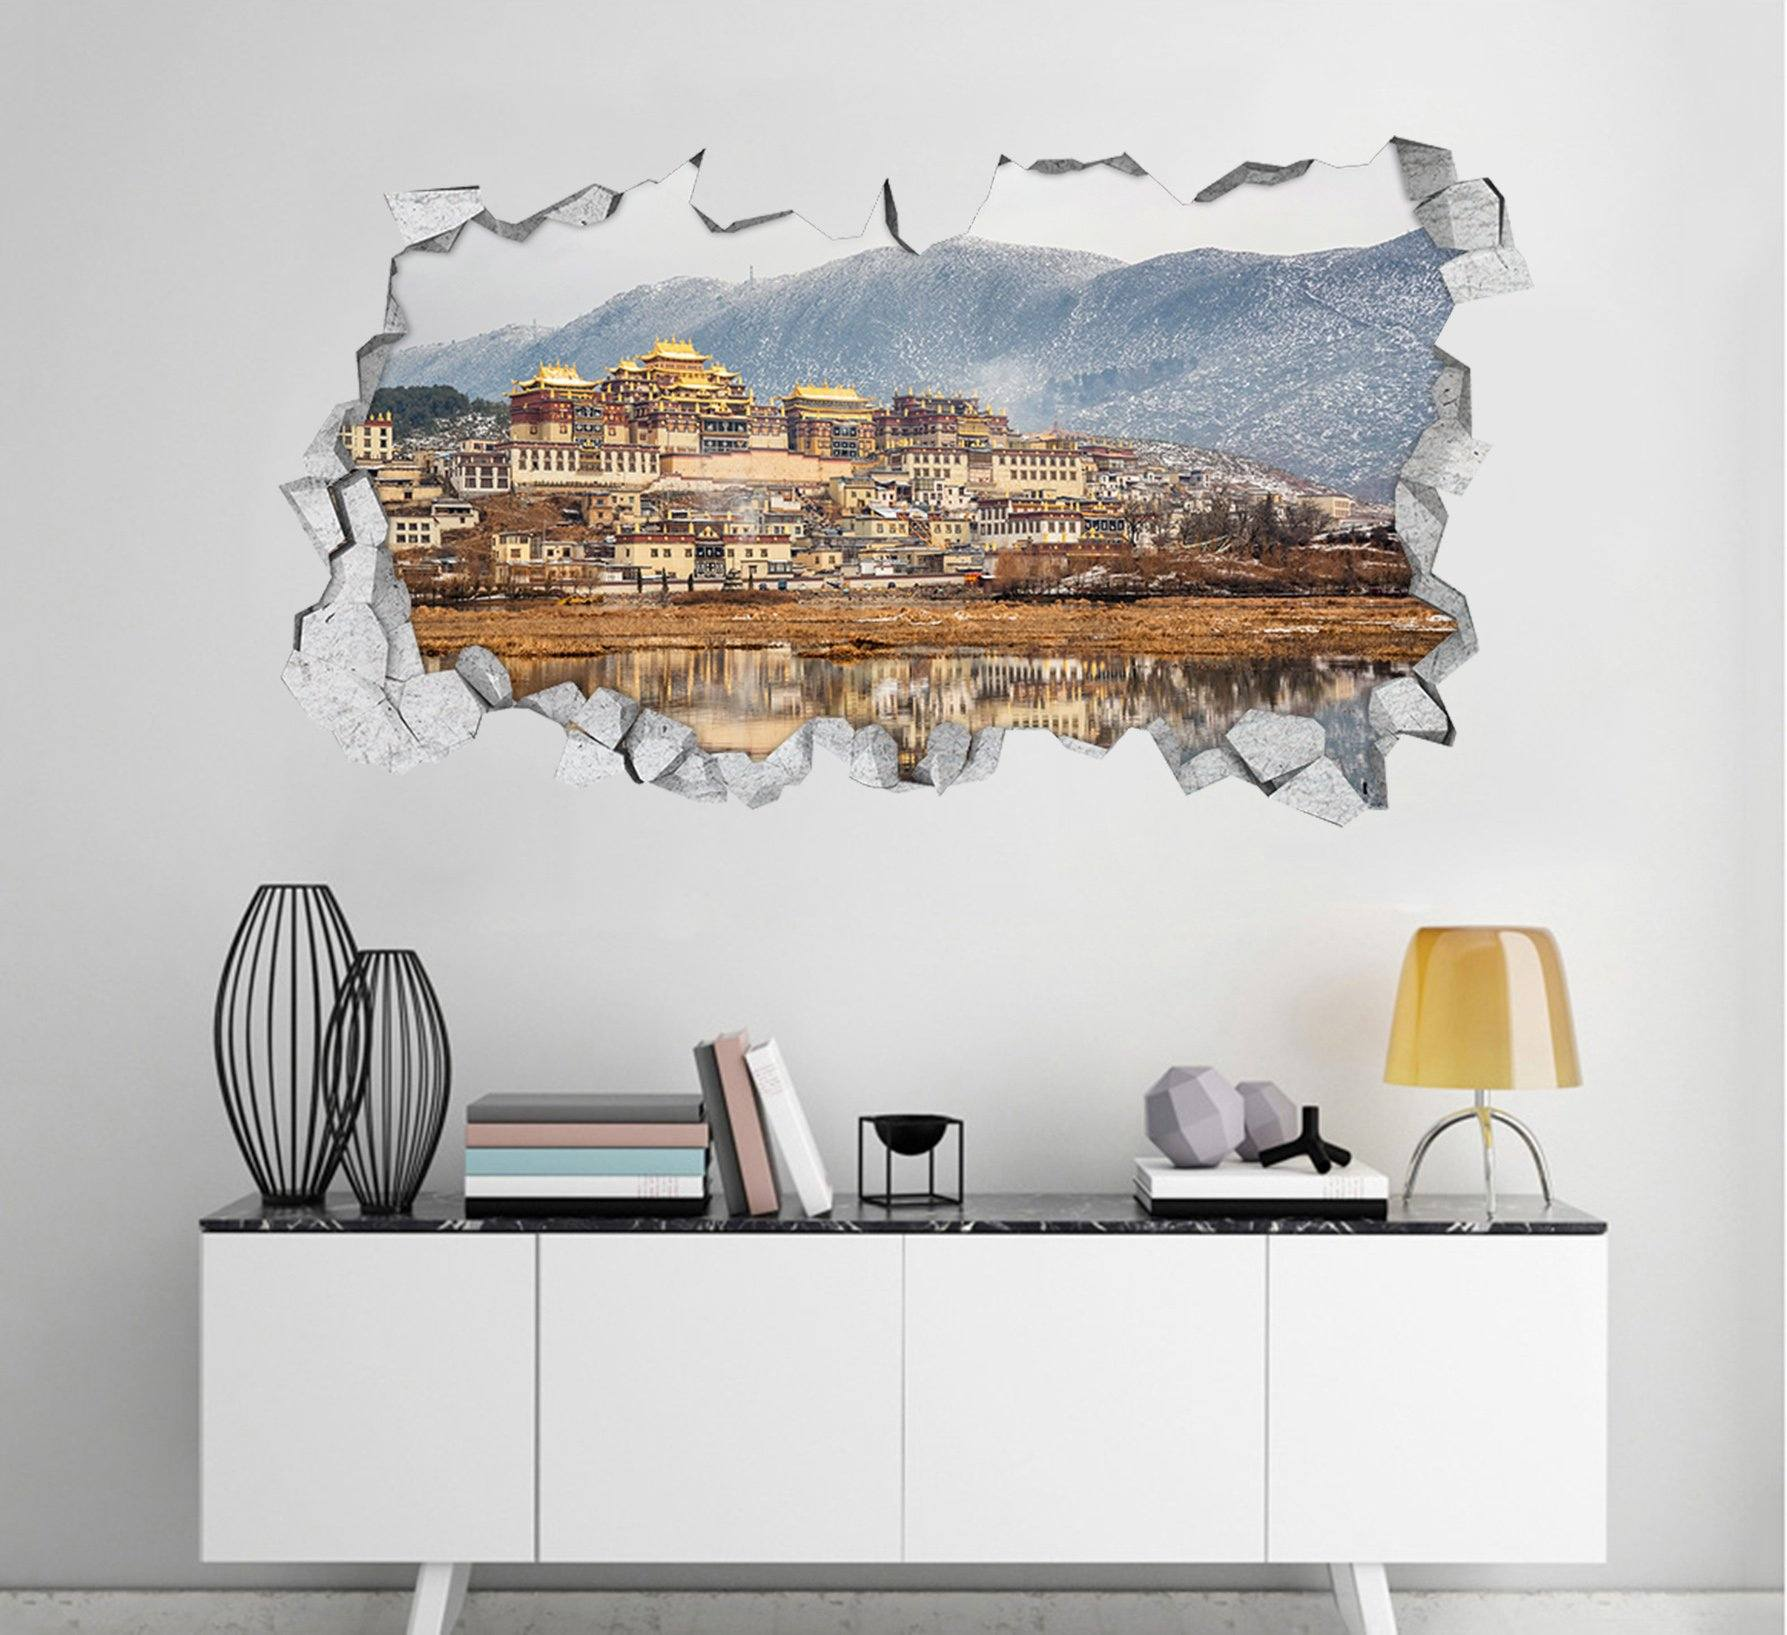 3D Snowing Mountain Town 107 Broken Wall Murals Wallpaper AJ Wallpaper